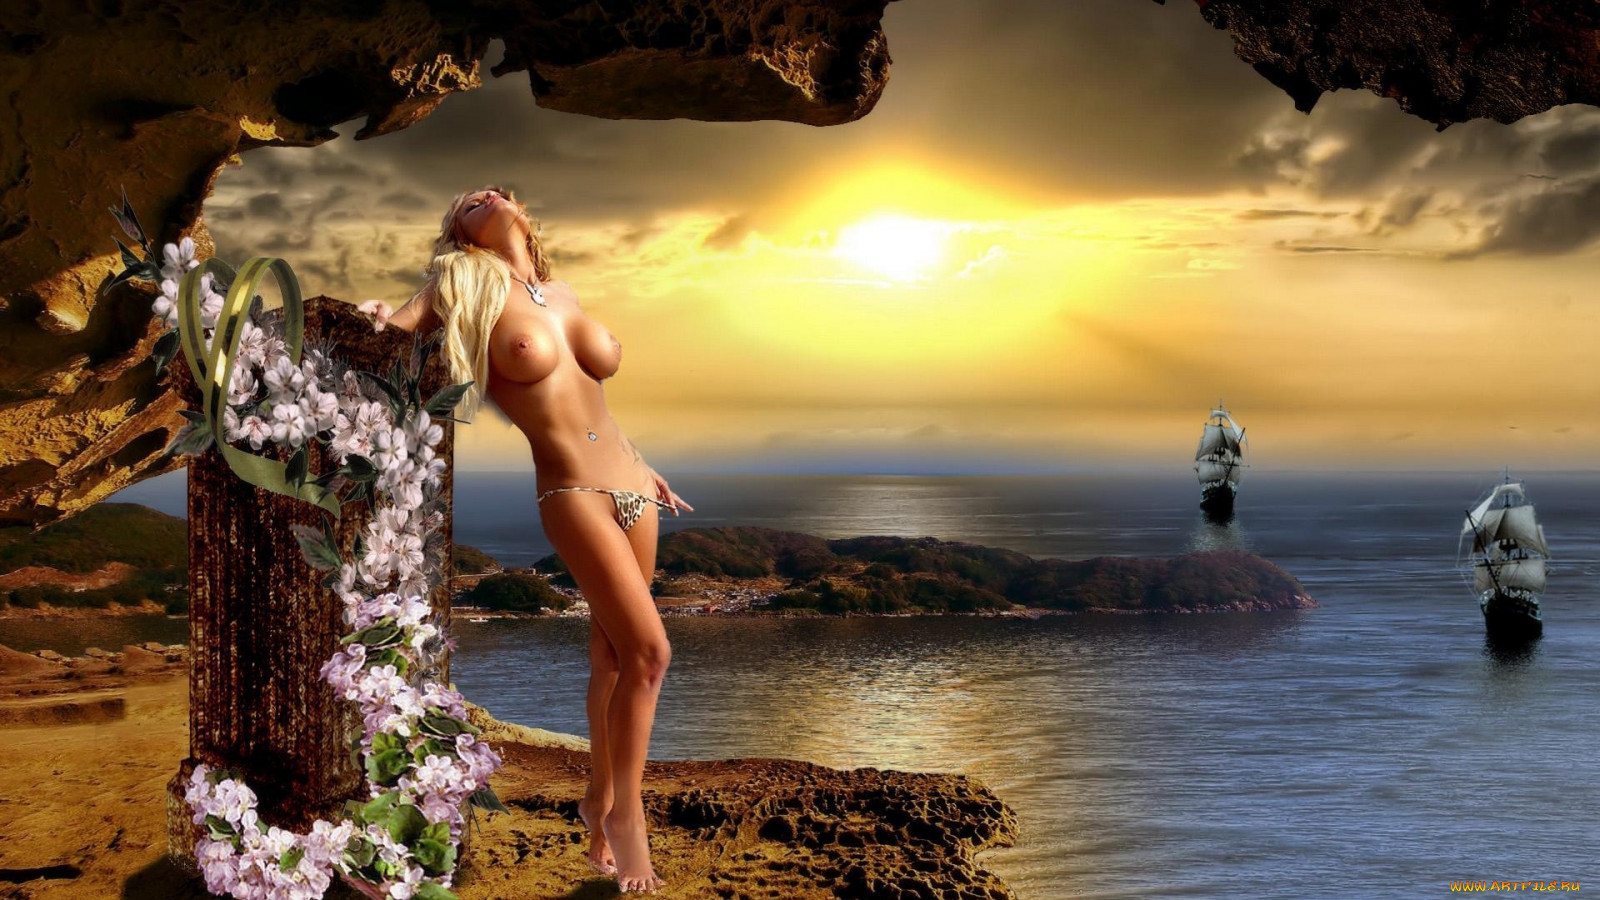 Nude fantasy women desktop wallpaper softcore tube